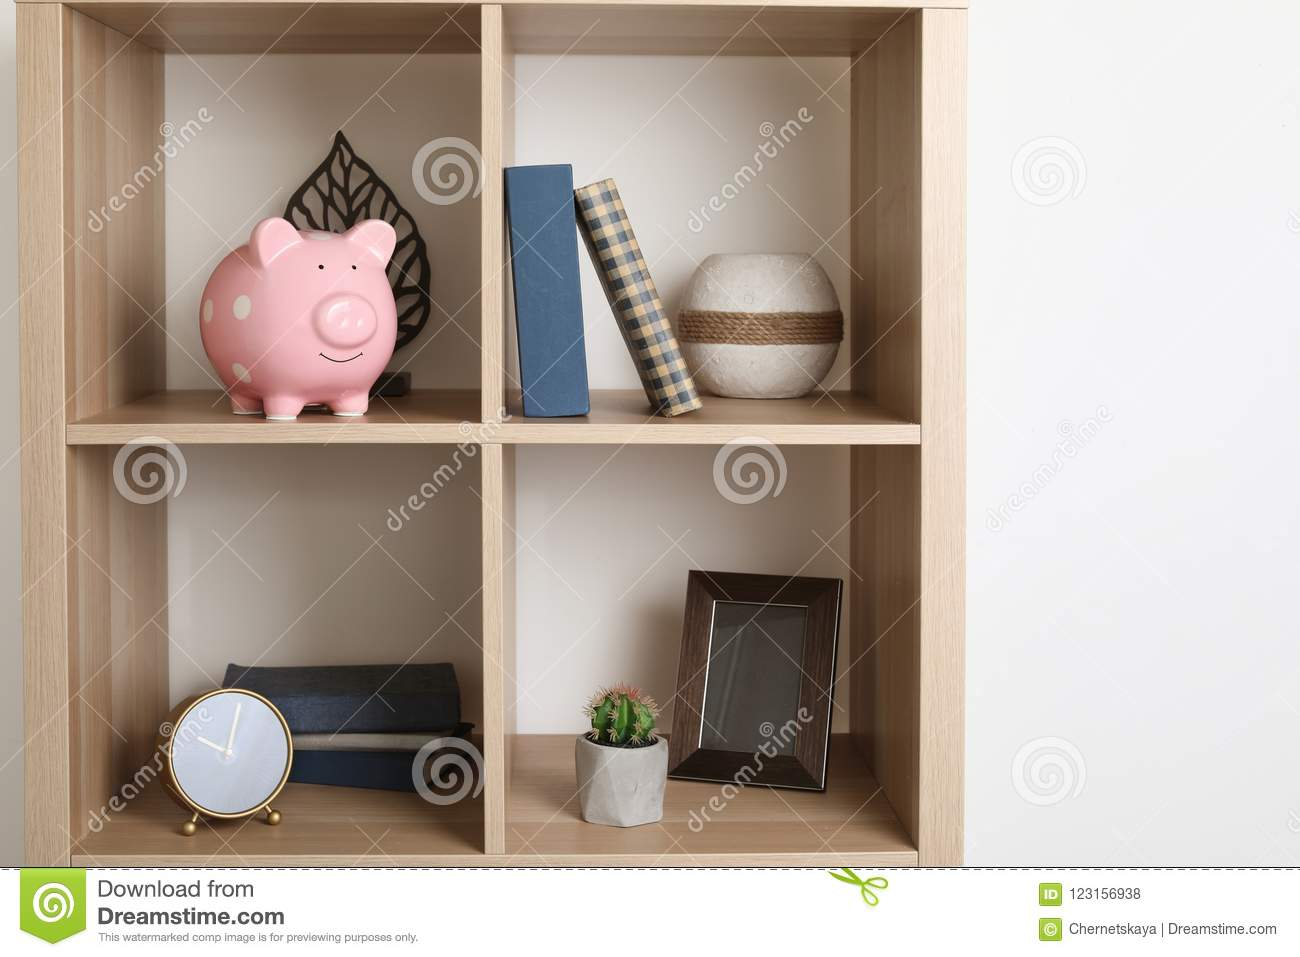 Shelving unit with decorative interior elements piggy bank near white wall